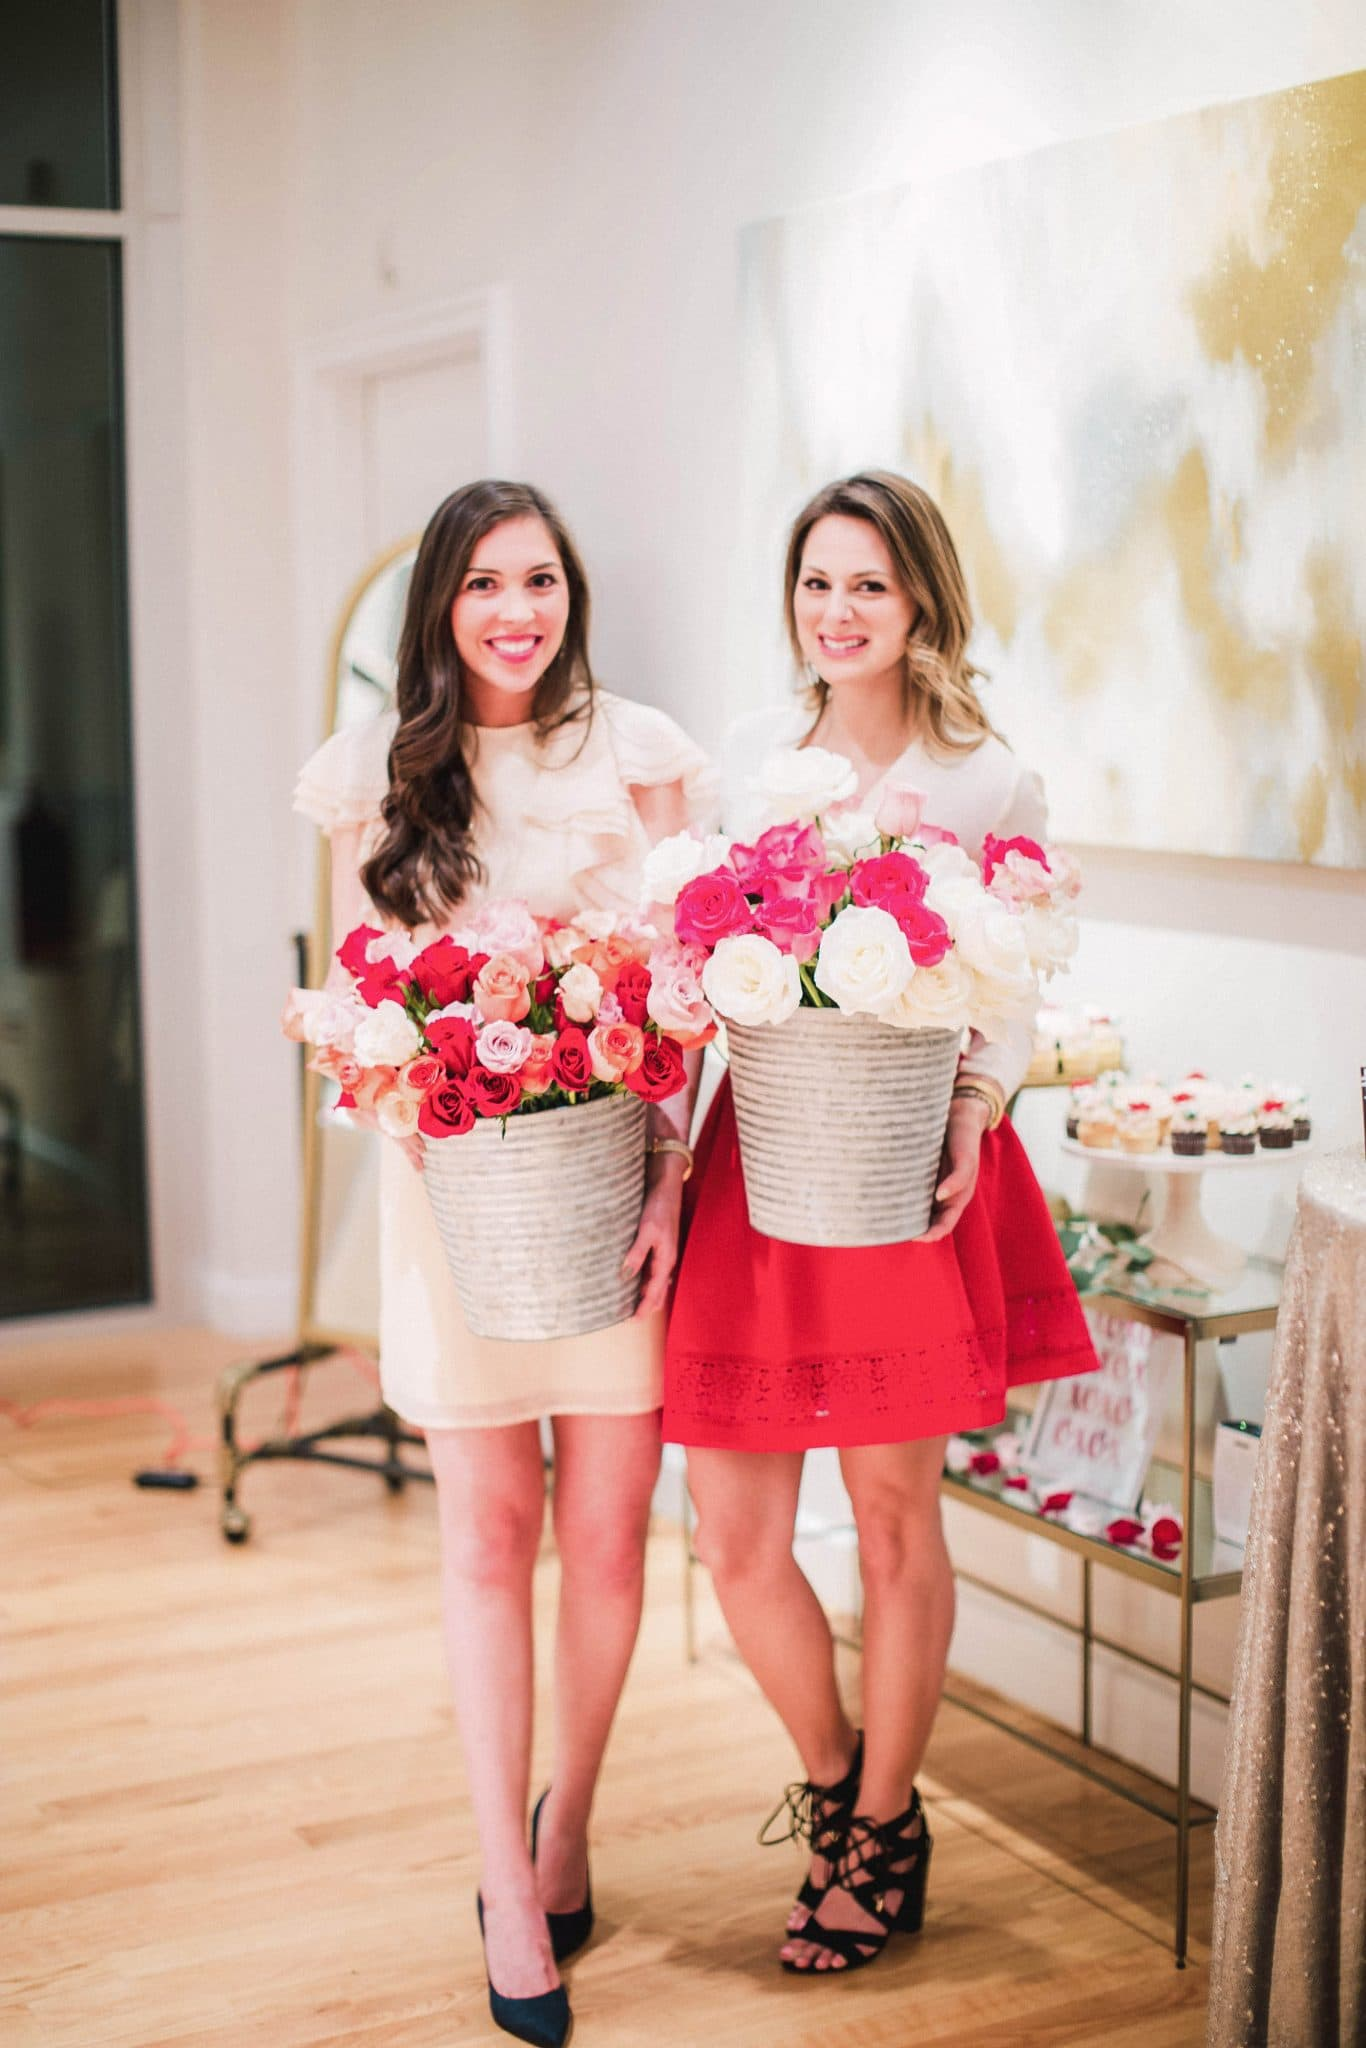 4 Steps for the Ultimate Galentine's Day